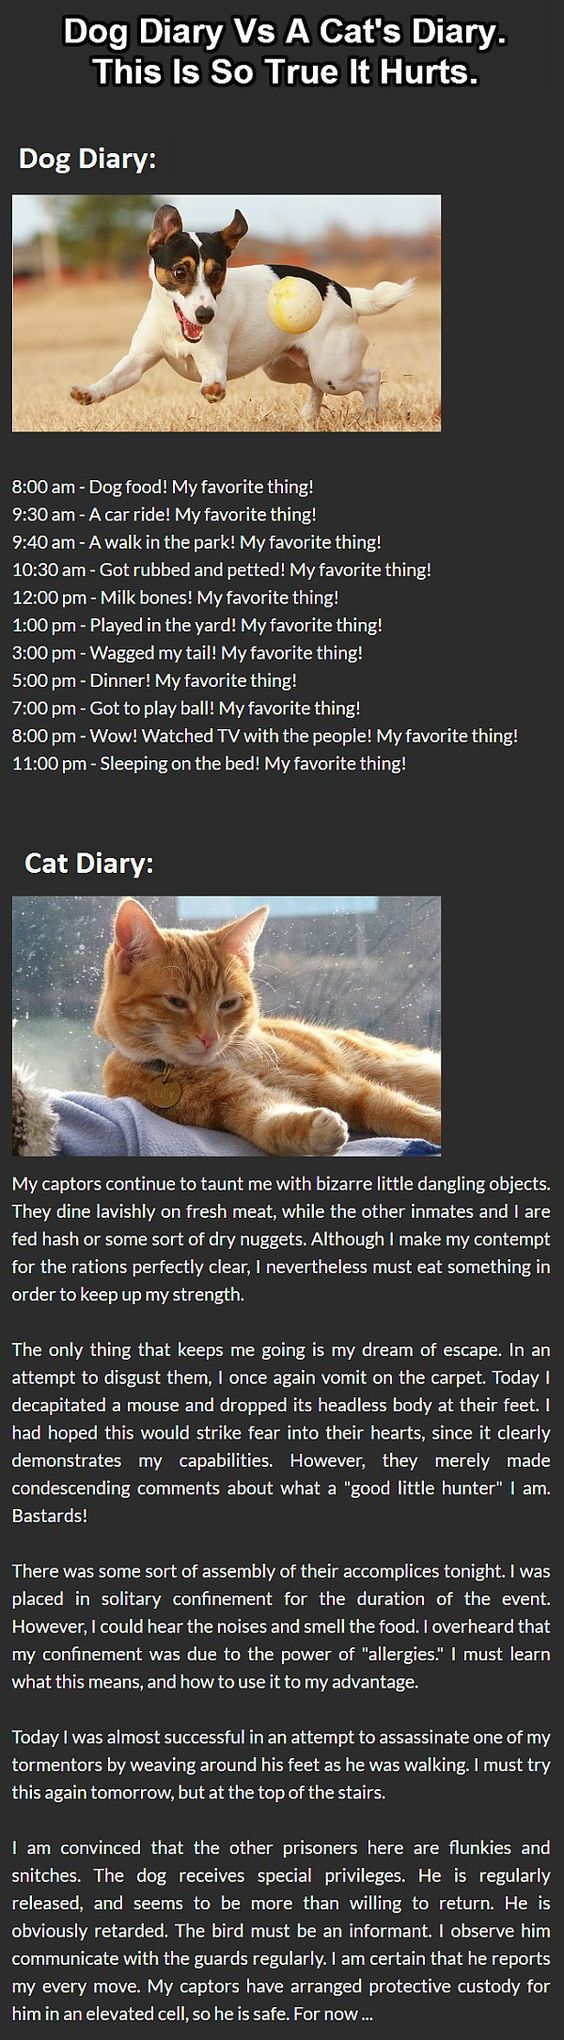 Cats Vs Dogs: This Is The Best Diary Comparison Ever.: